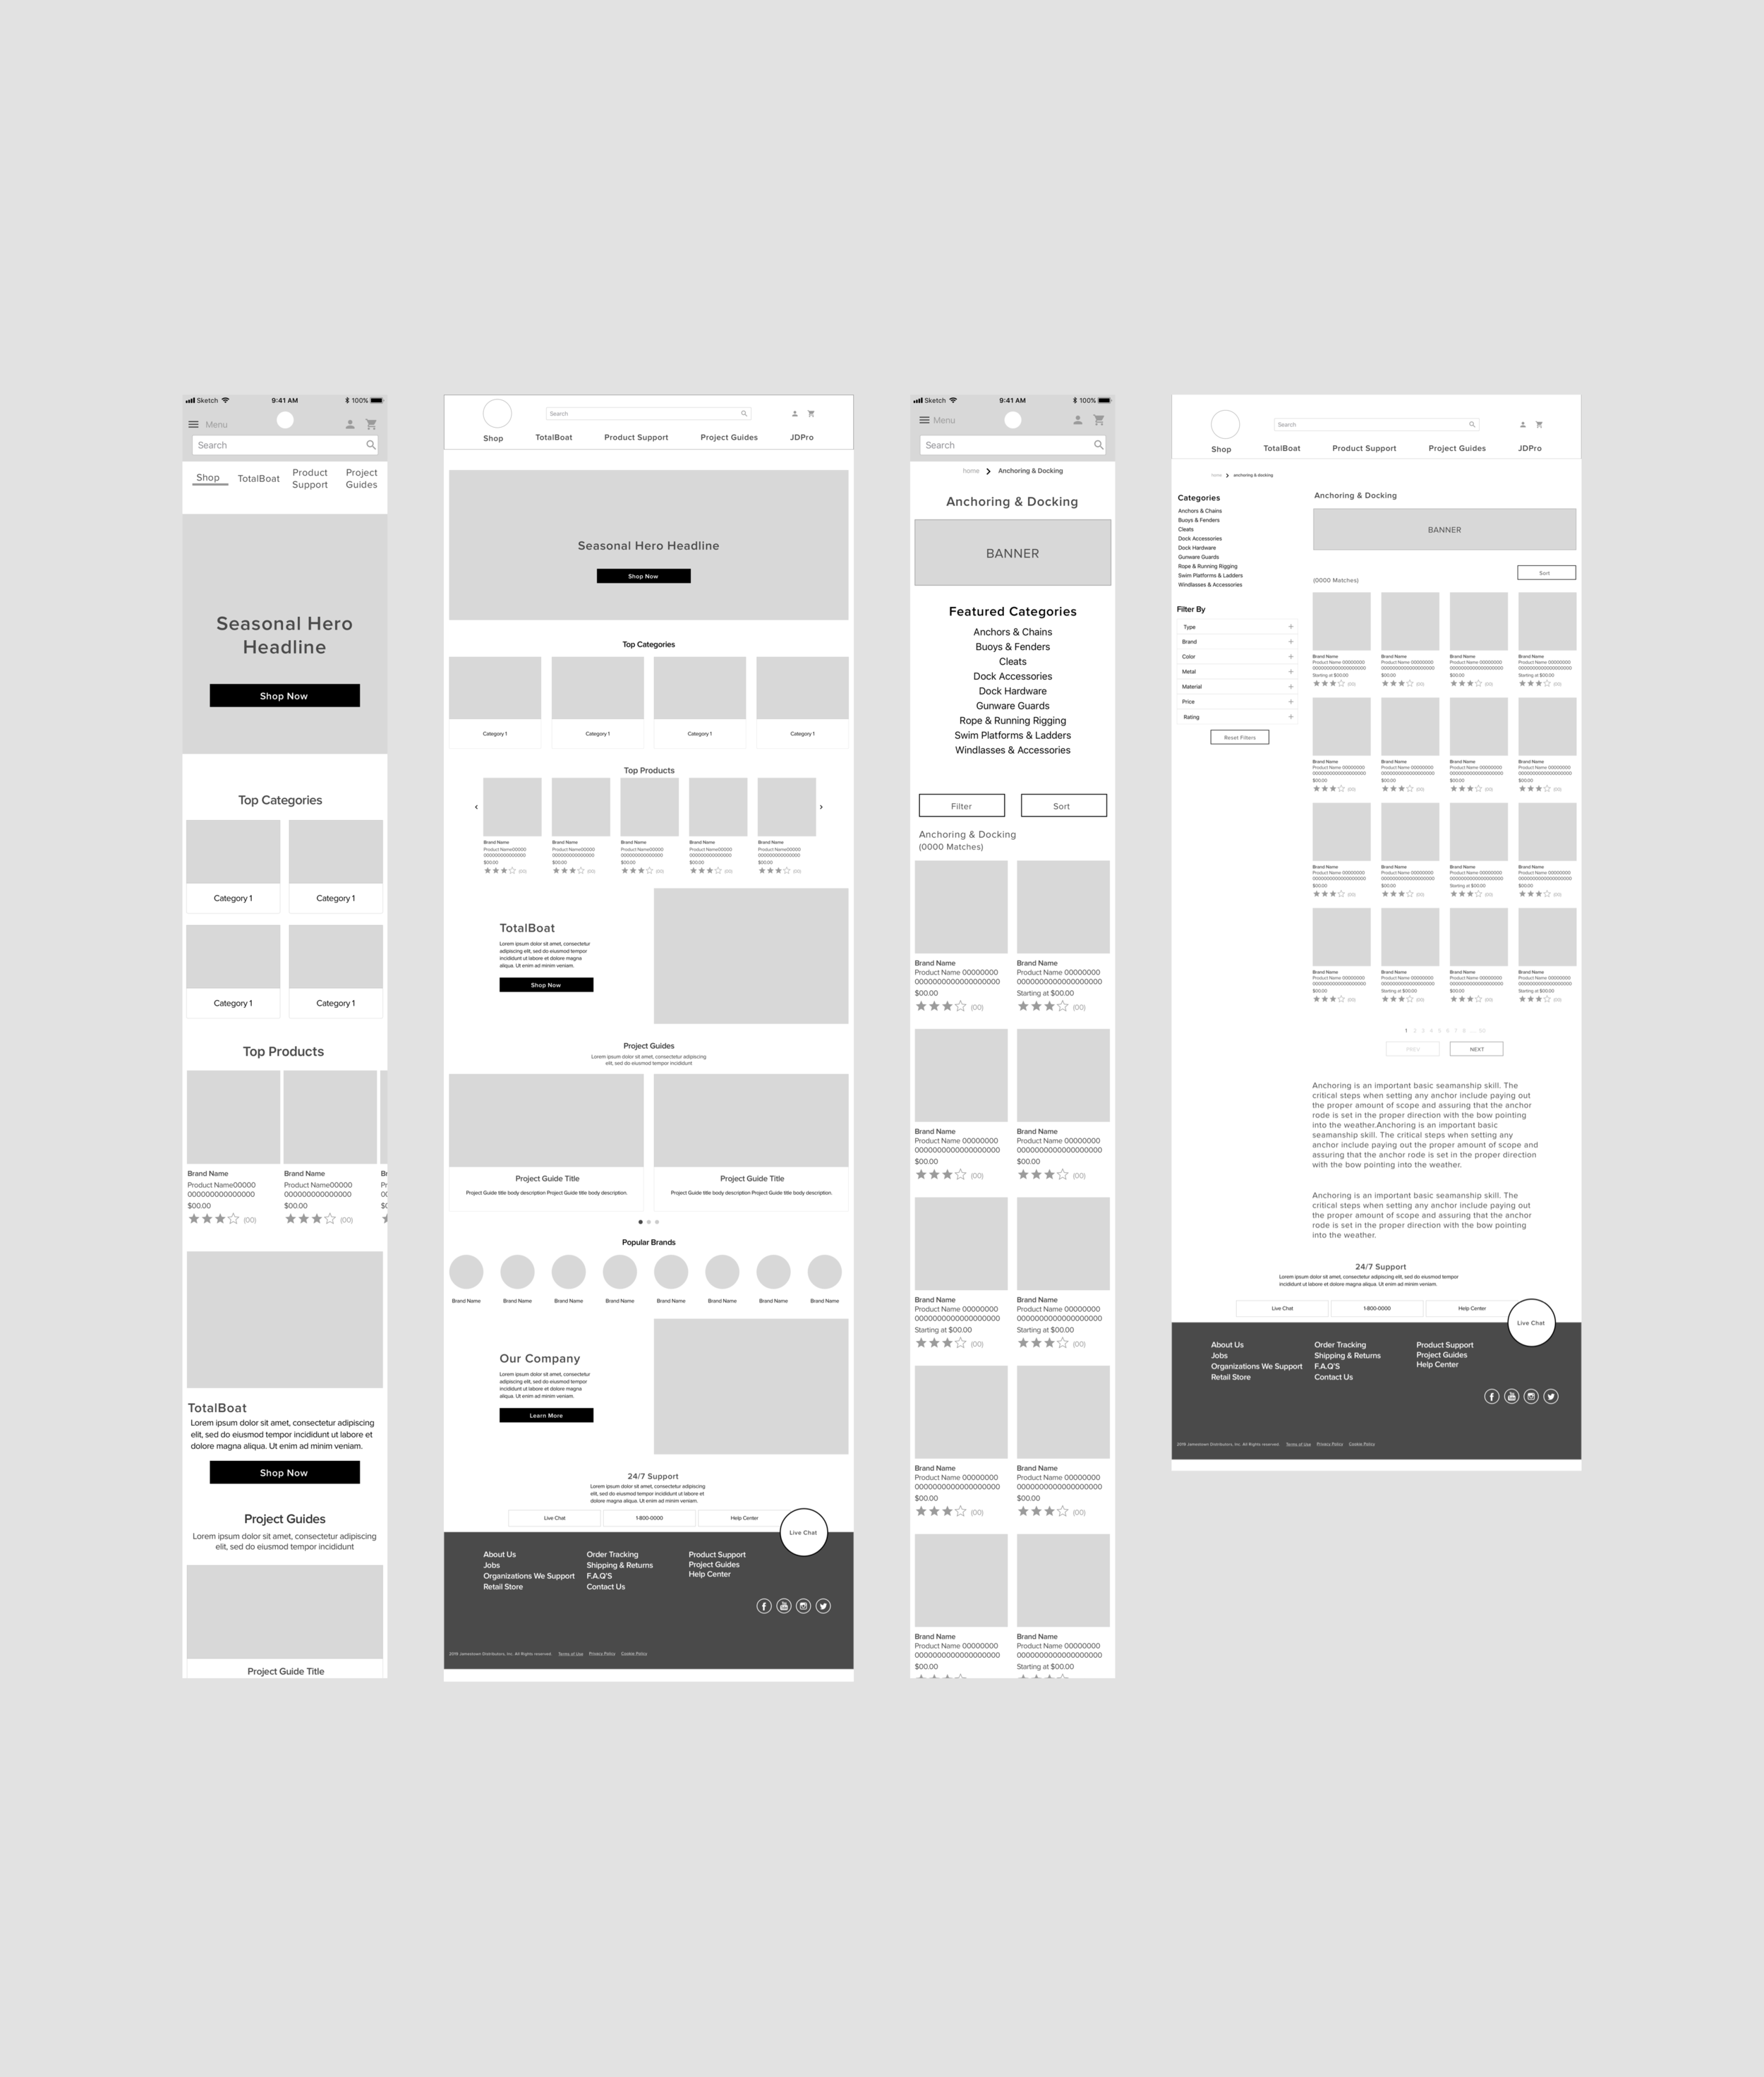 Initial Home & Product Category wireframes (mobile & desktop)